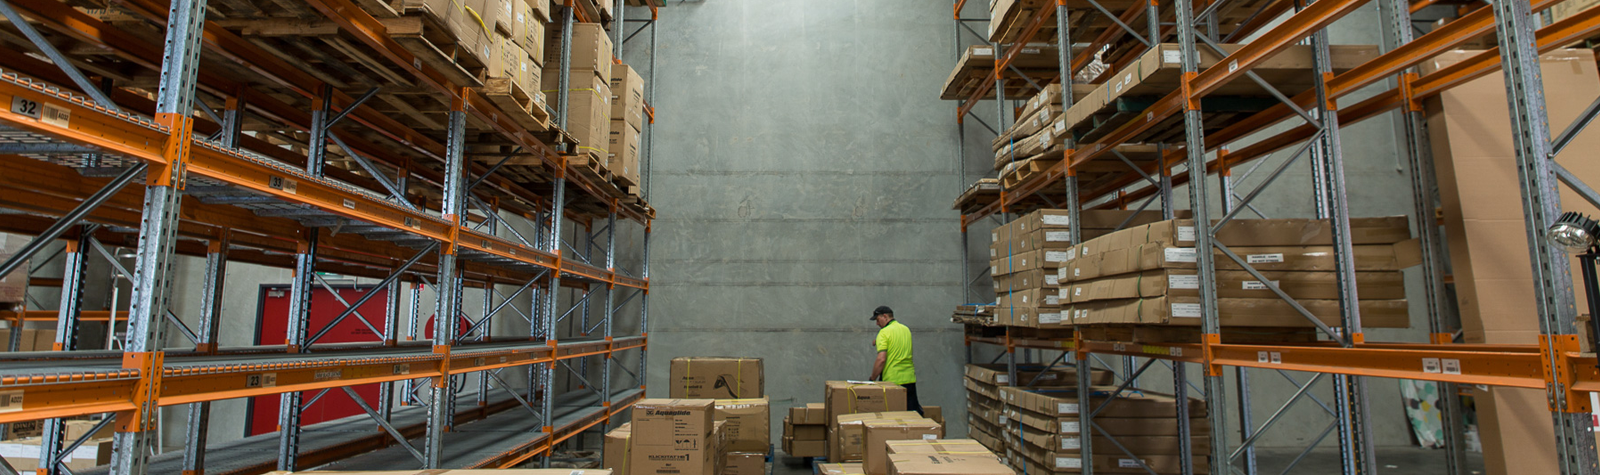 Offering Warehousing Solutions